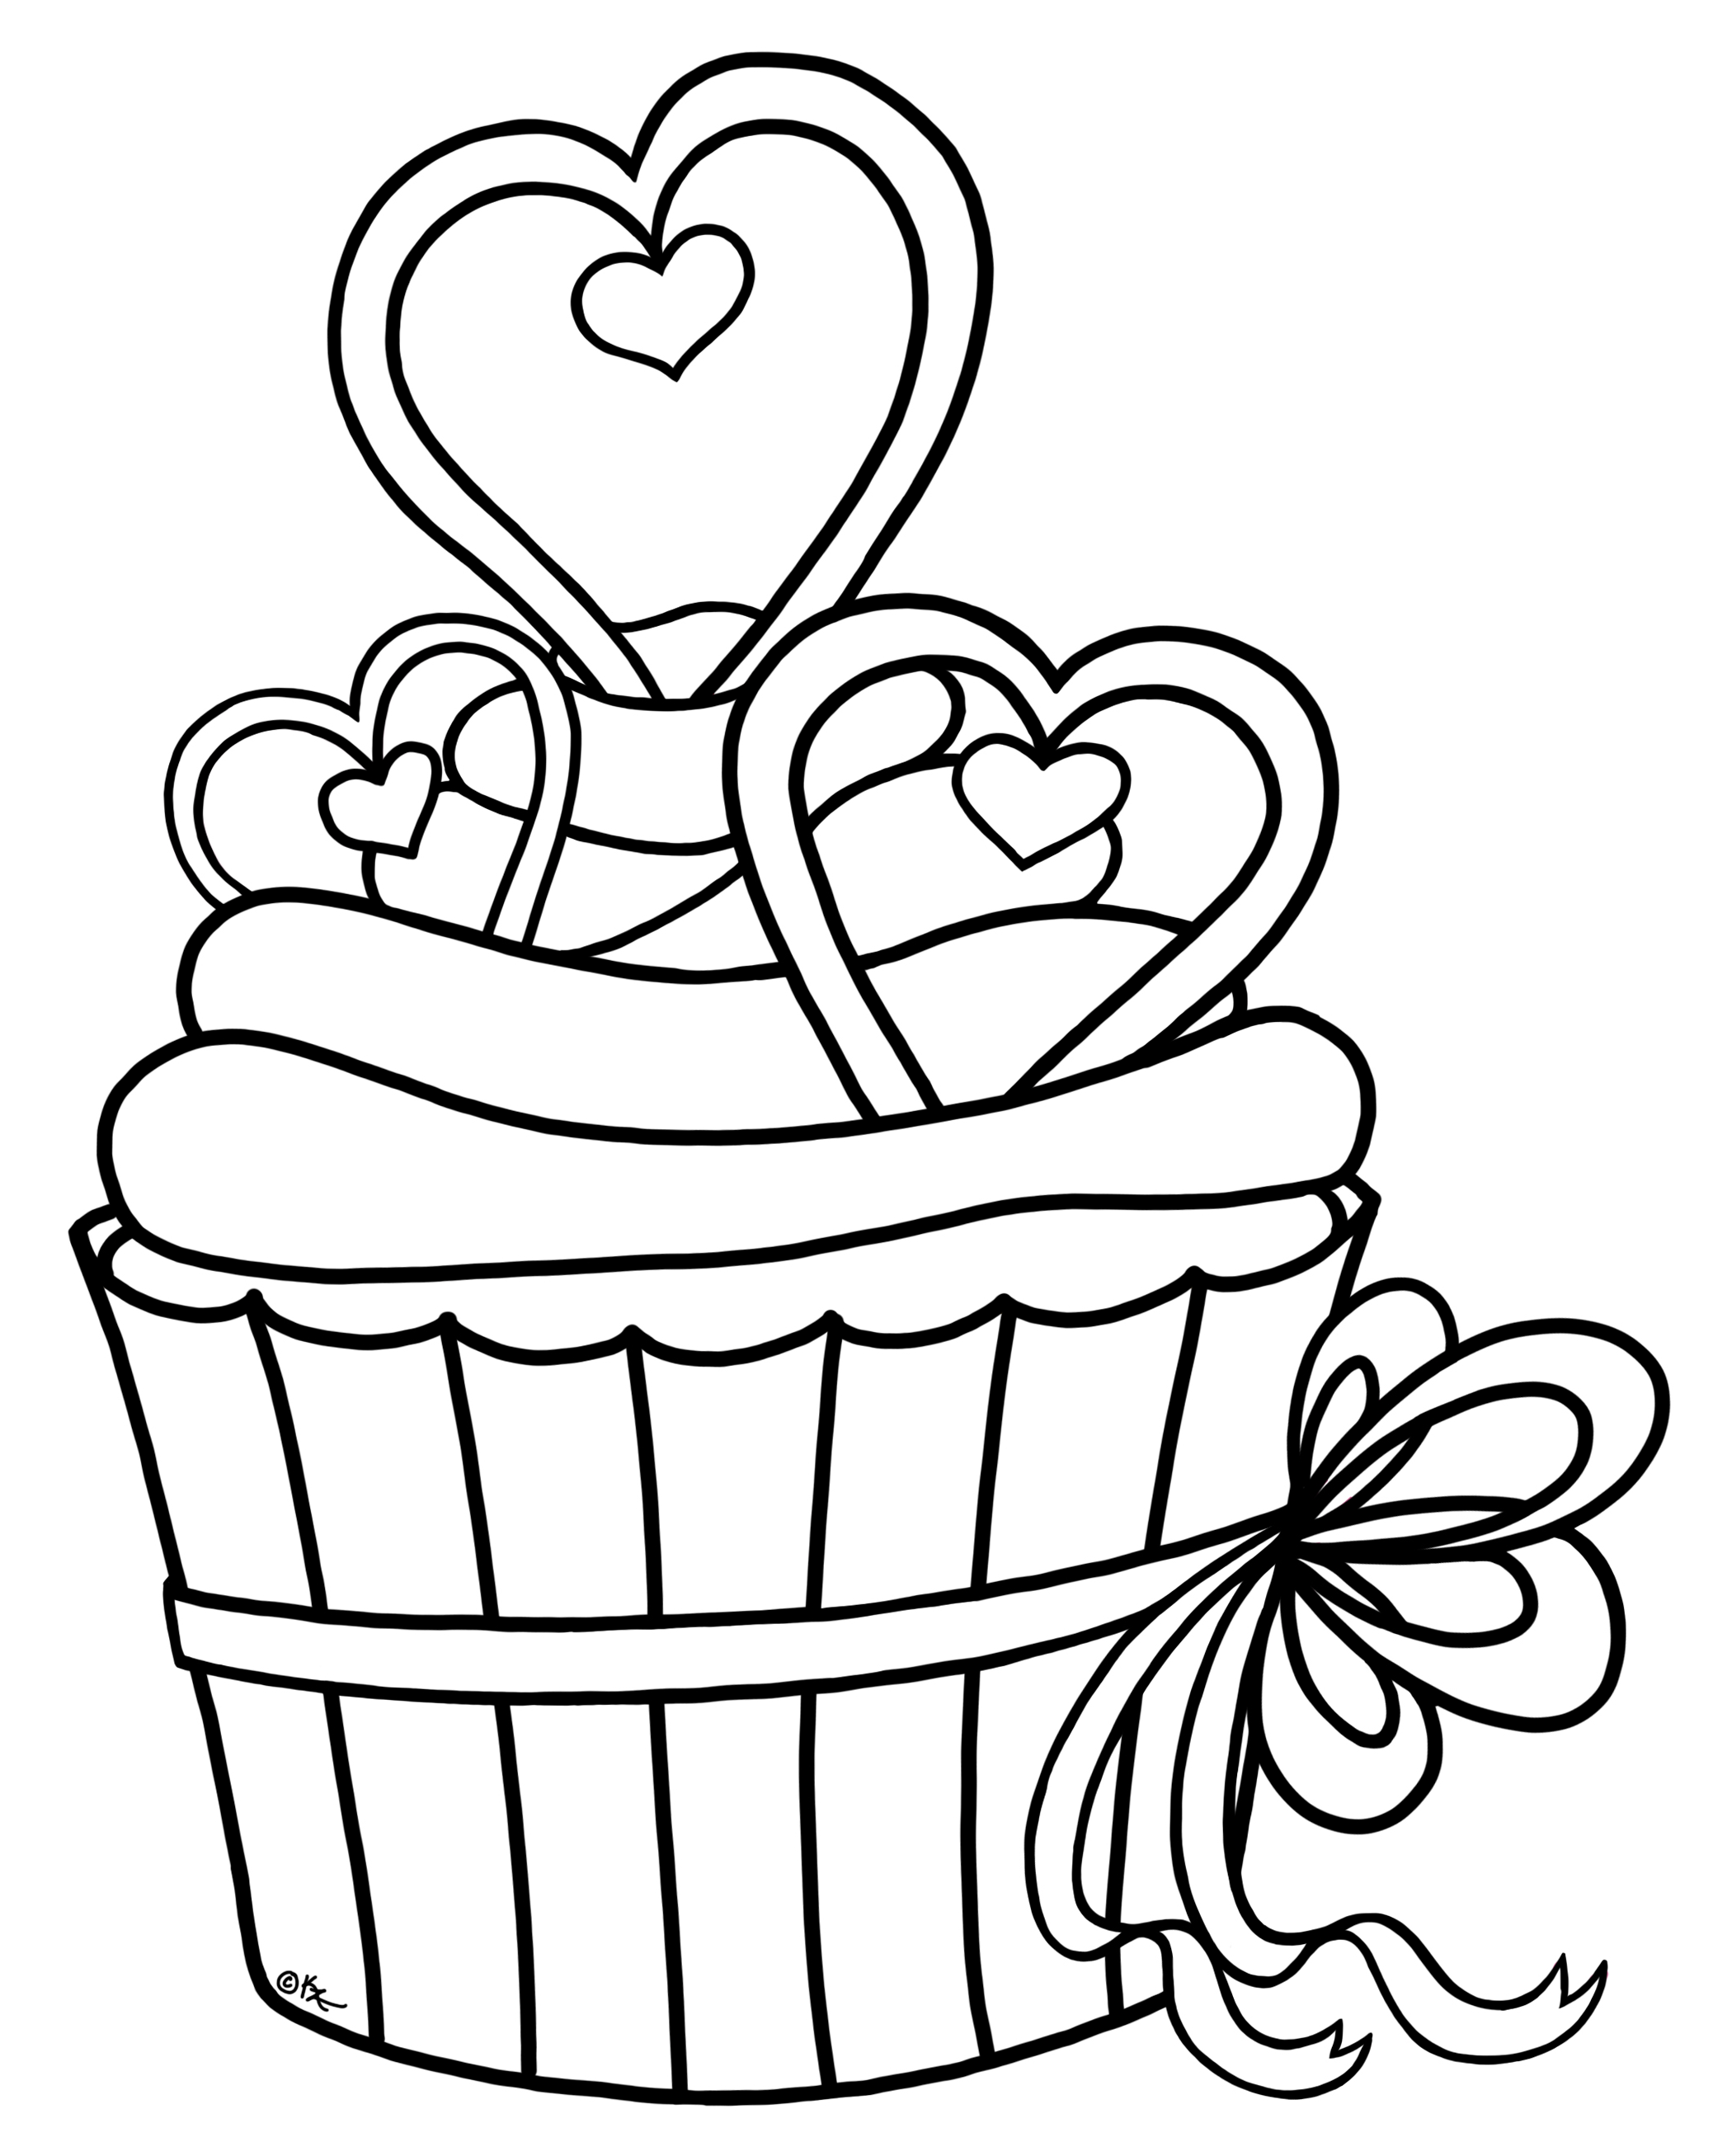 Images For > Cupcake Outline Sketch